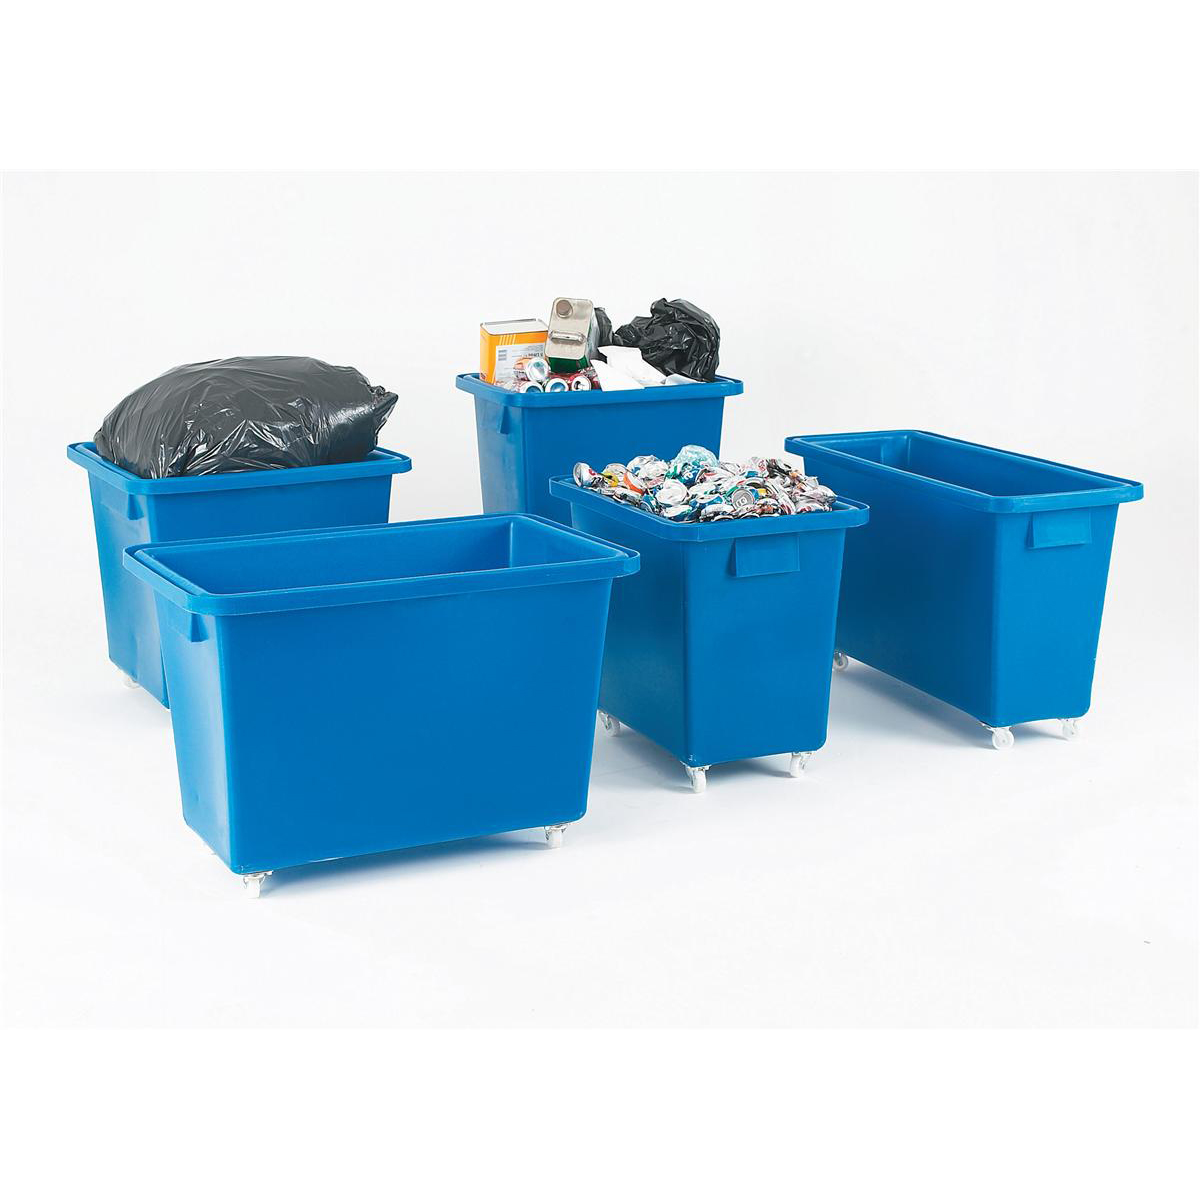 Bottle Skip Four Castors Medium Density Polyethylene 625x570x570mm Royal Blue